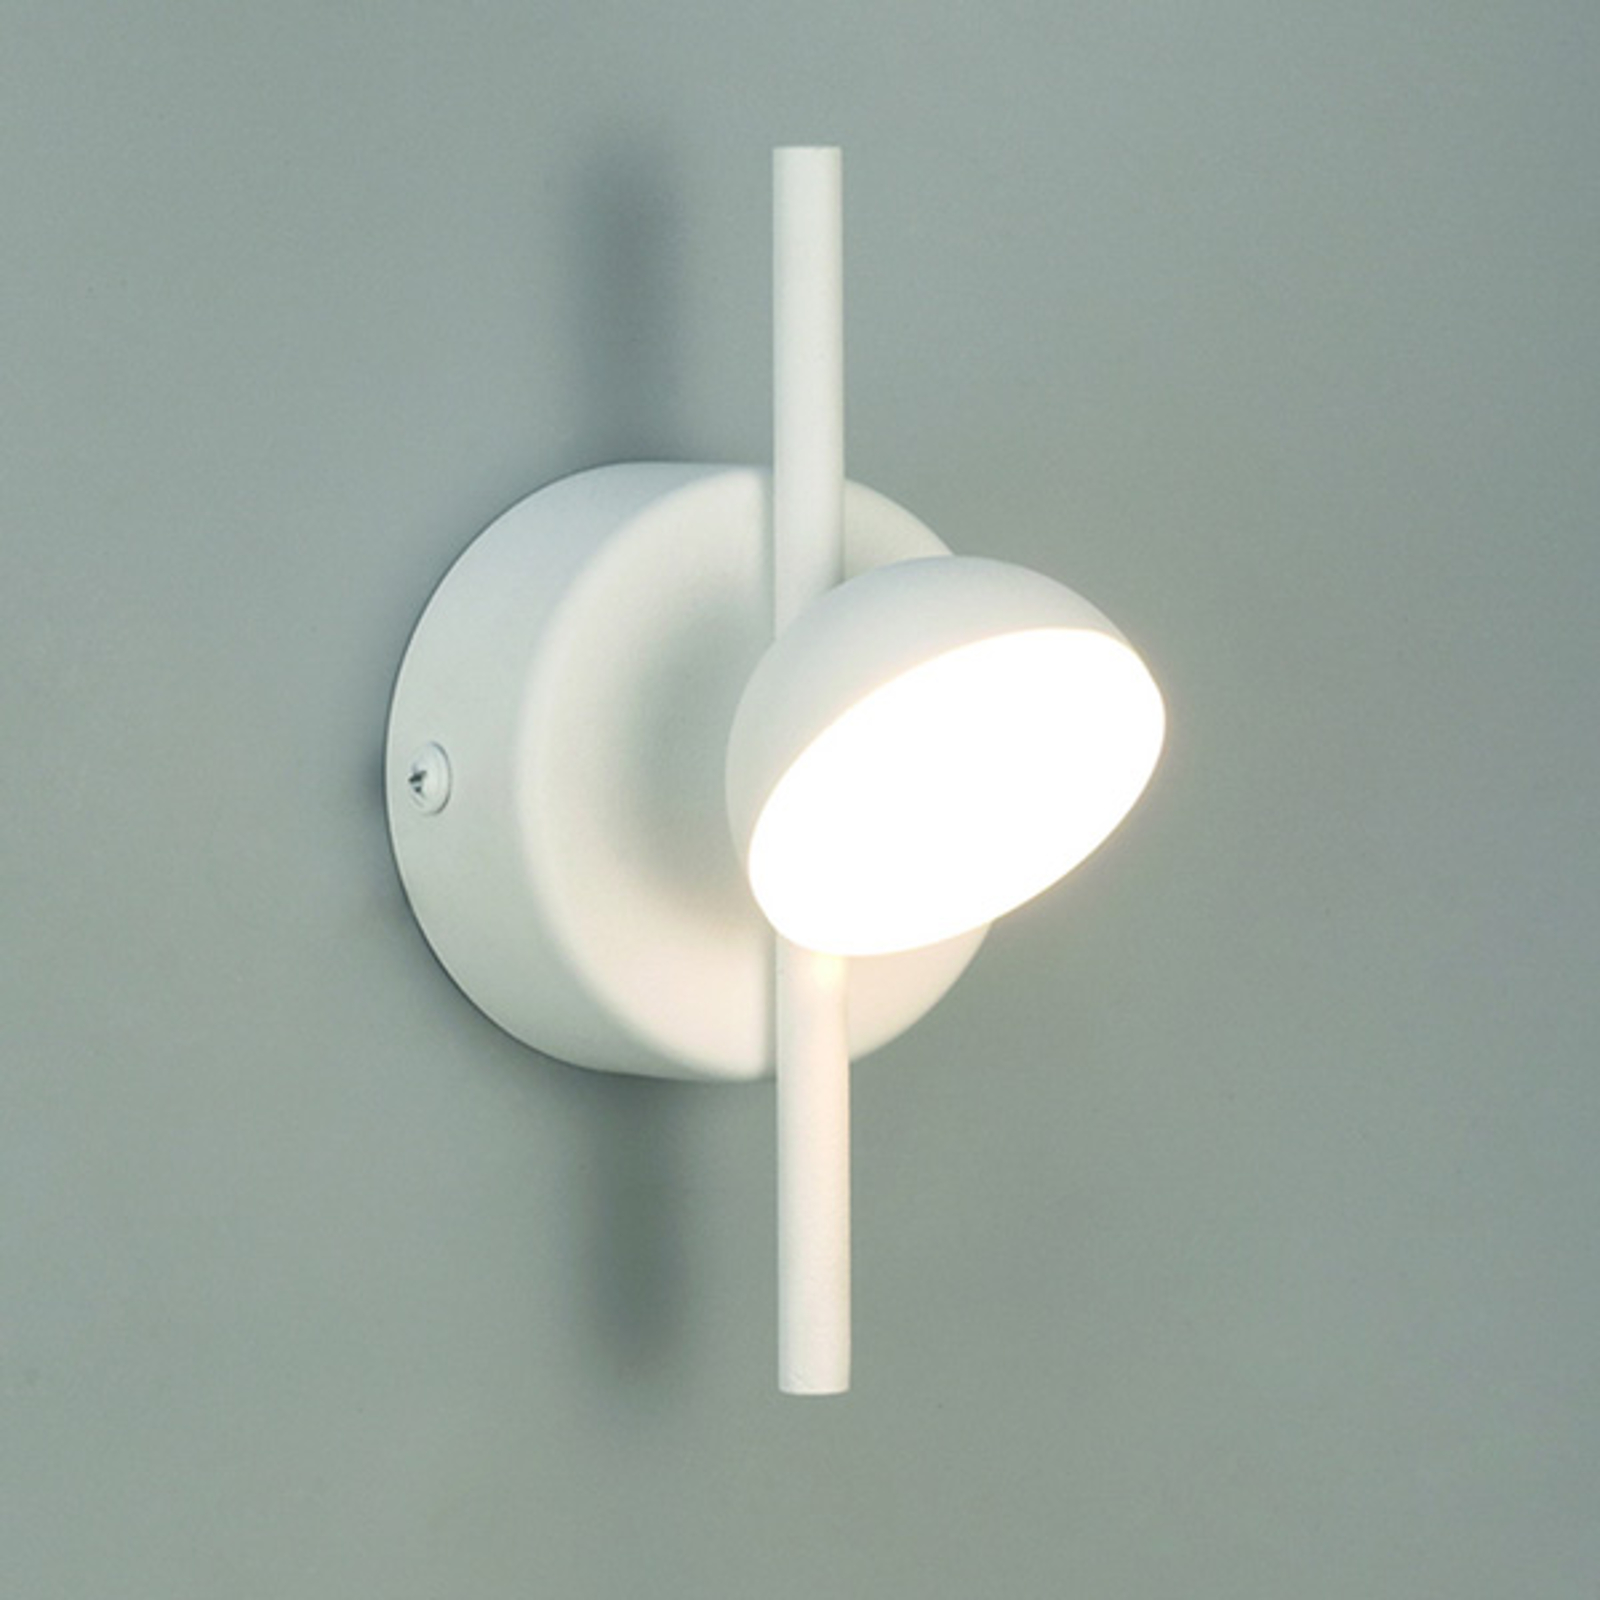 LED wandlamp Adn, 1-lamp